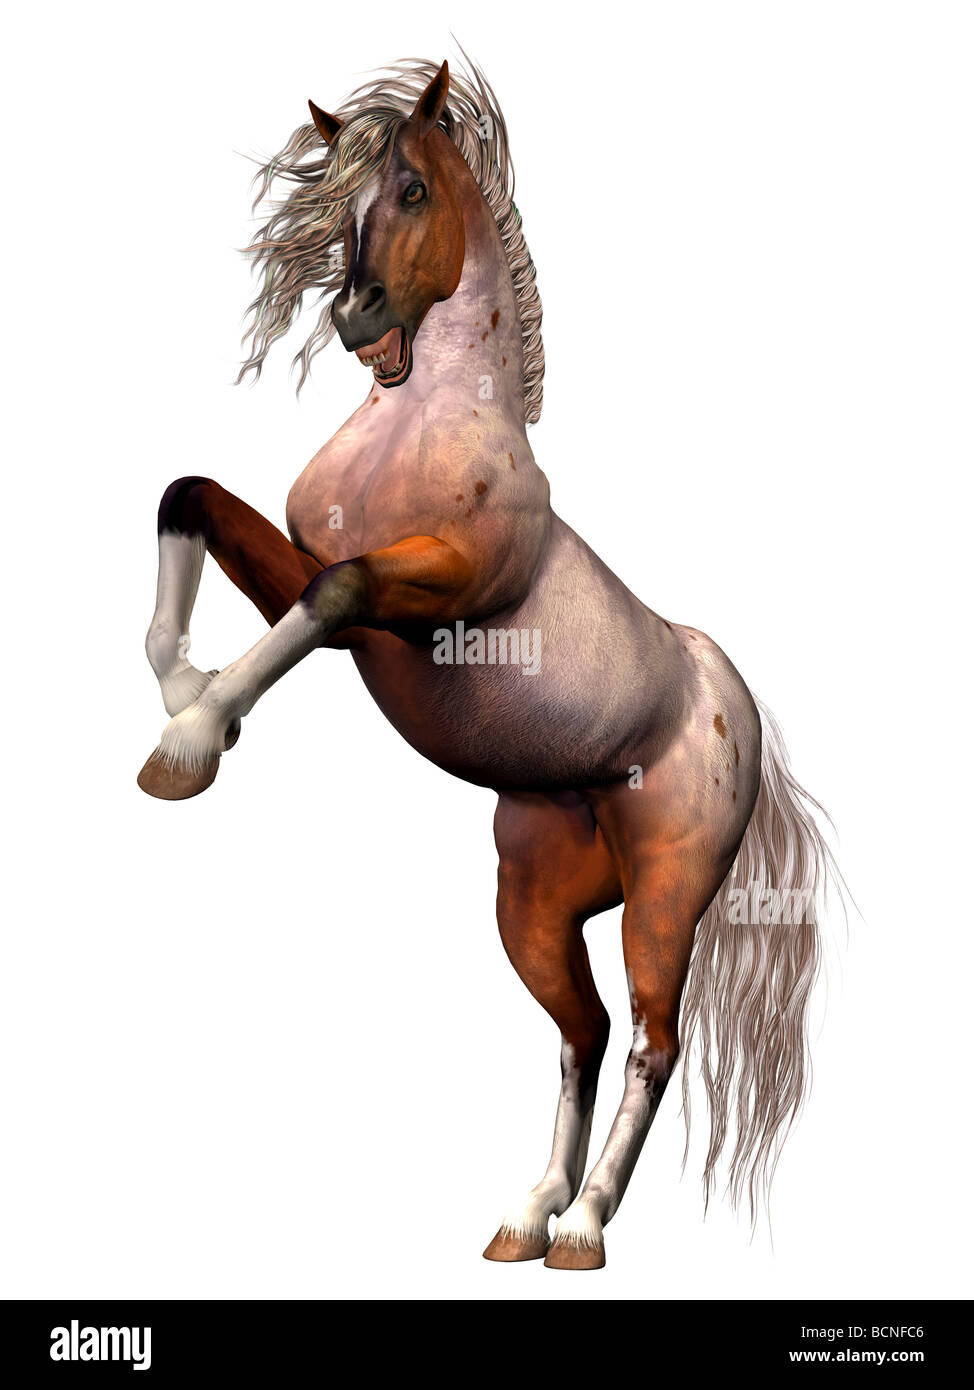 A Brabant Bay breed of horse rearing in anger, in defnese of itself or its mate, or attacking. - Stock Image